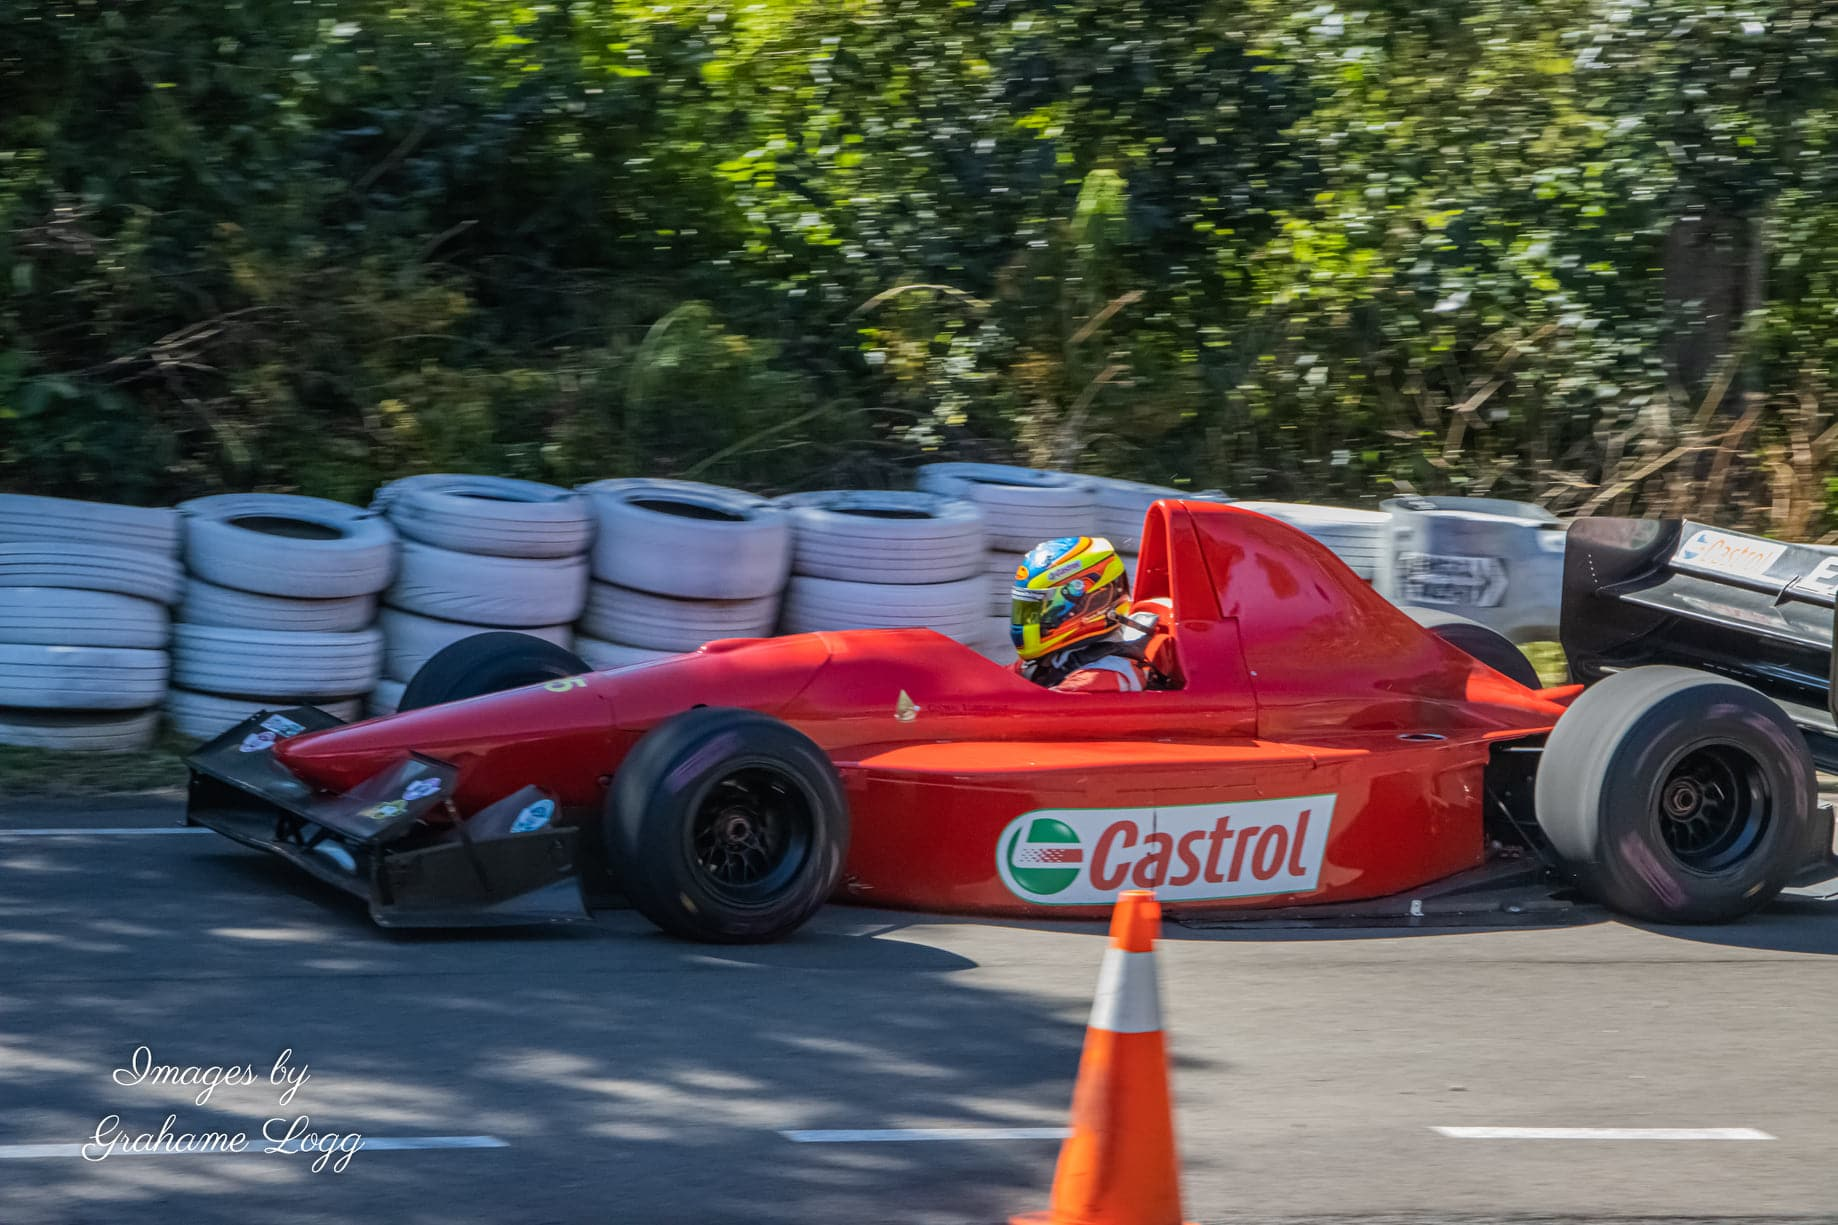 2021 Mantic Clutch NSW Hillclimb Round 3 REPORT